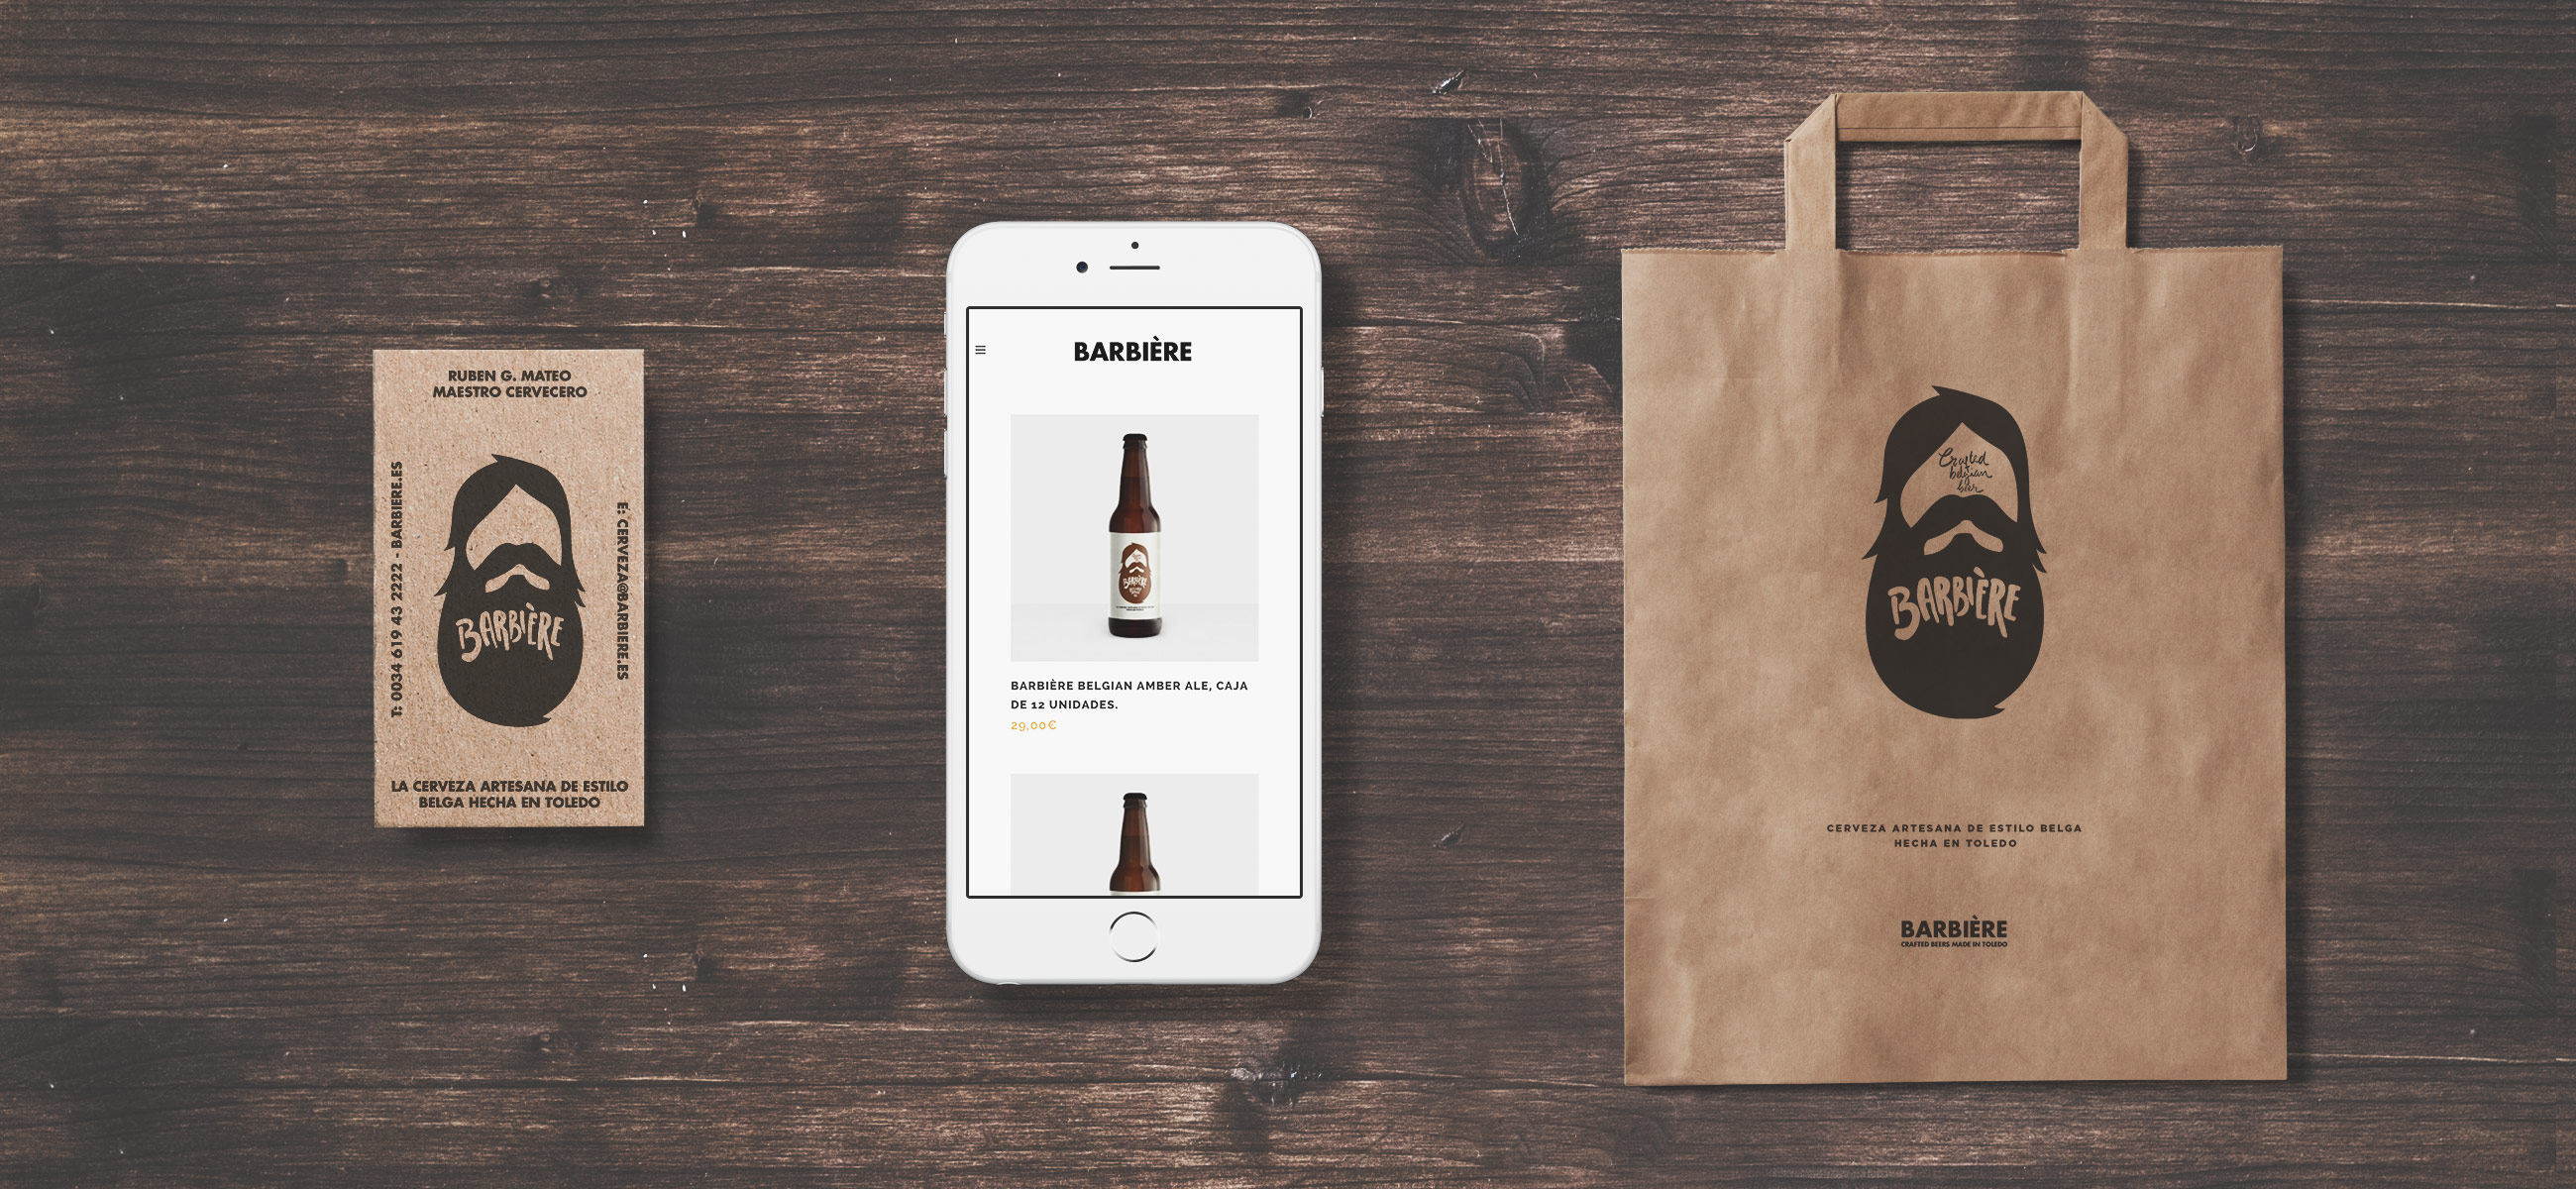 Barbiére Beer, proyecto de branding y packaging por The Woork Co